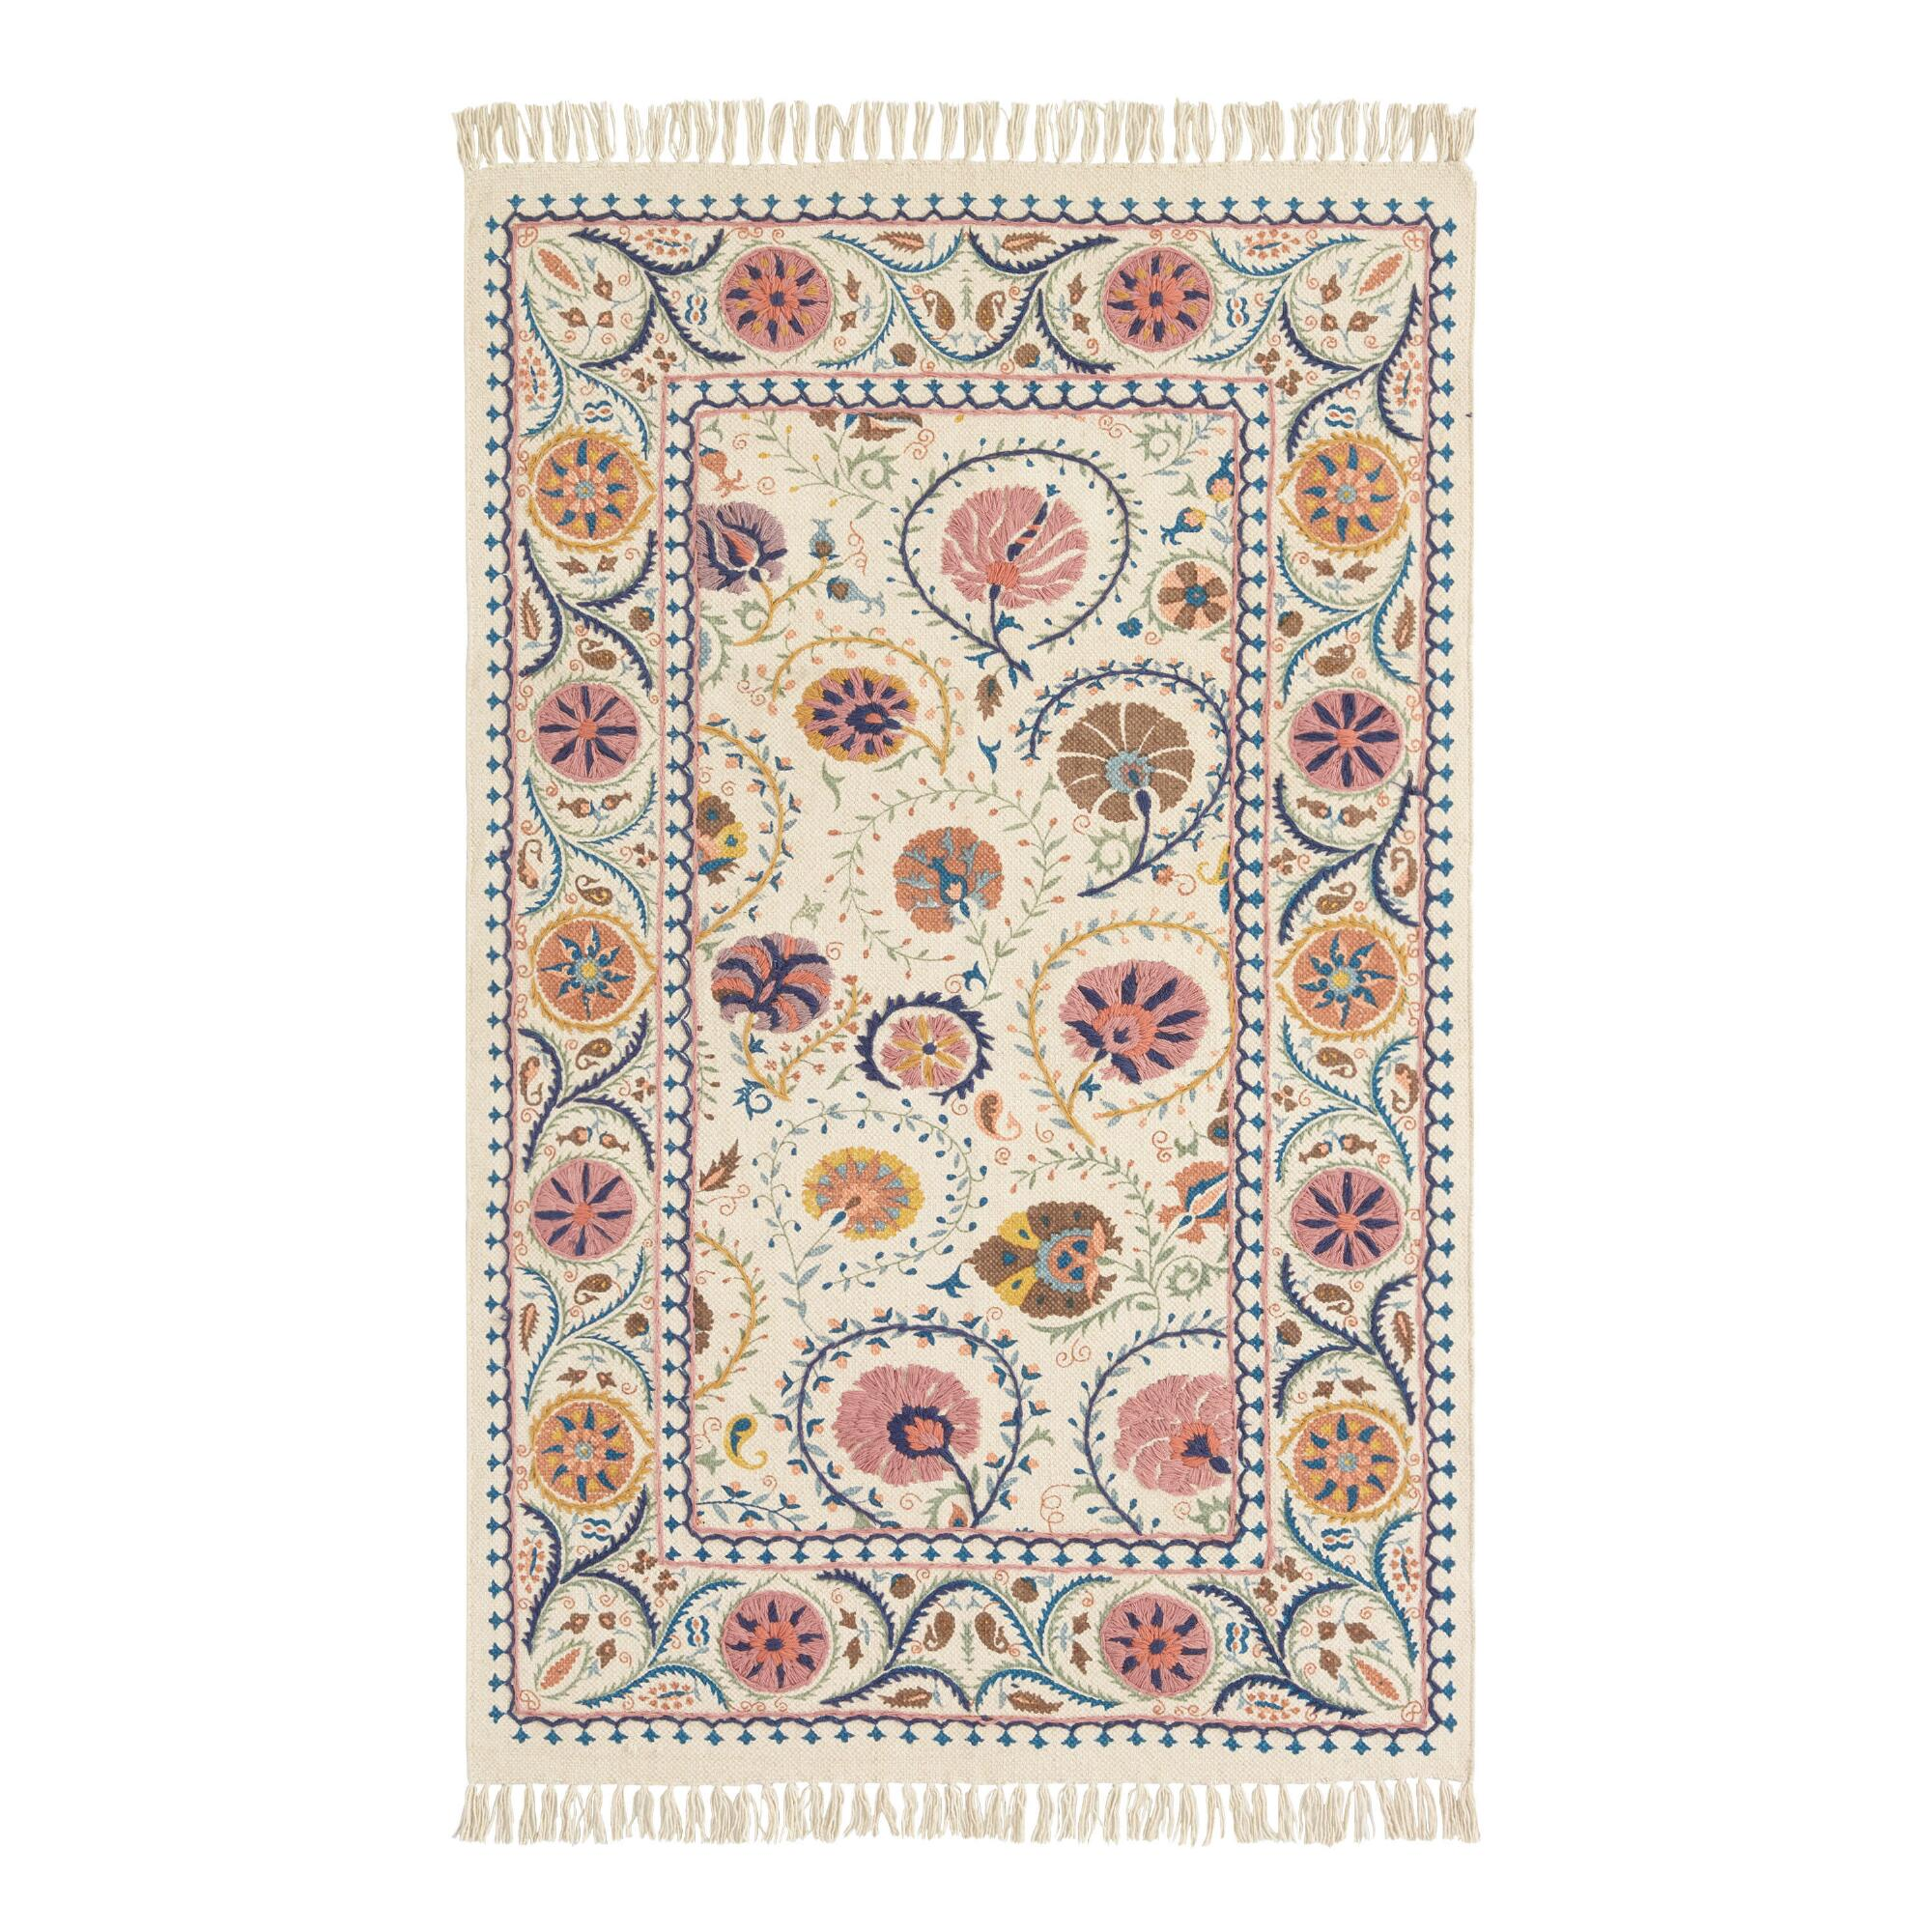 Blush Floral Embroidered Cotton Jaipur Area Rug: Pink - 3' x 5' by World Market